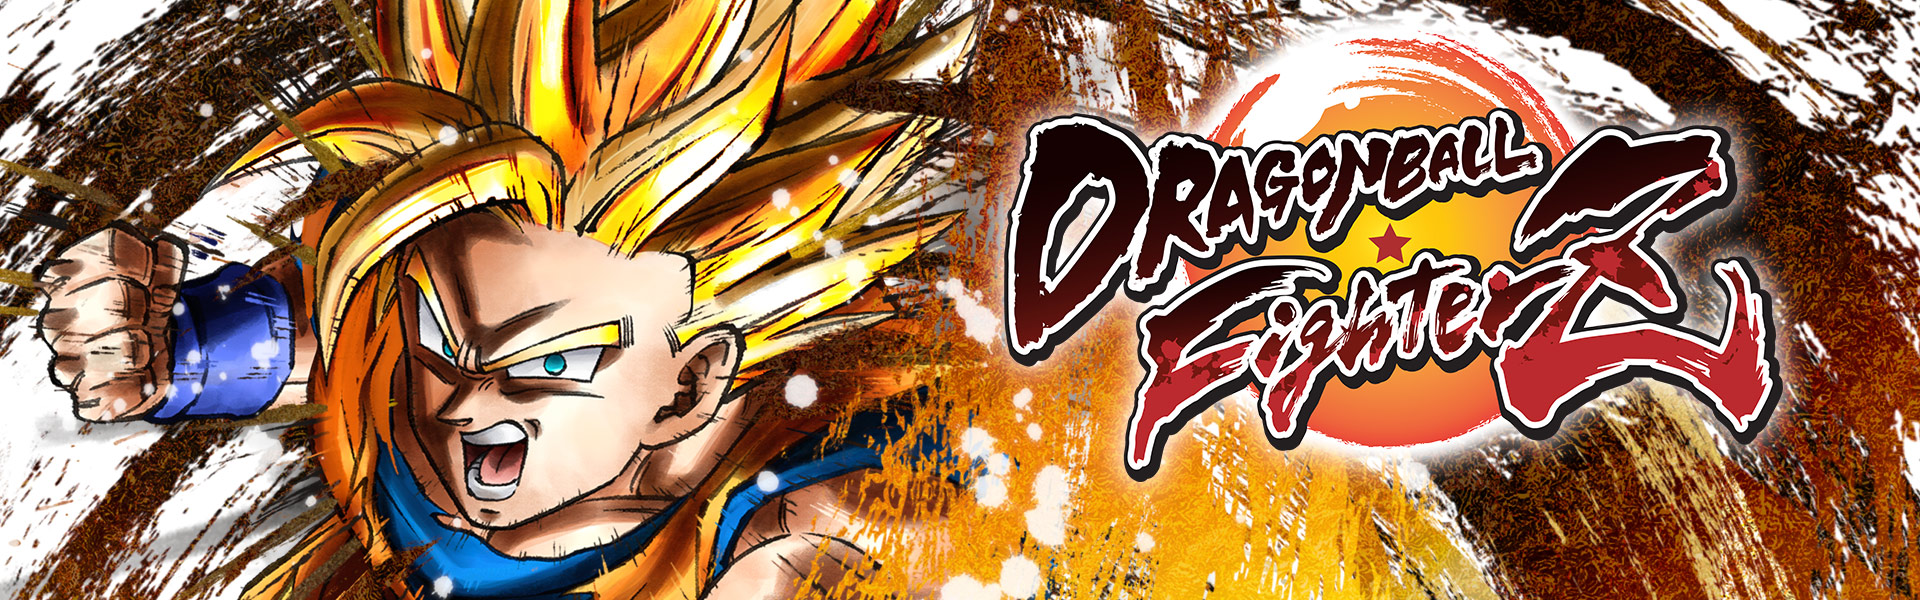 Dragon Ball FighterZ - Super Saiyan Goku tourné vers l'avant, en position d'attaque